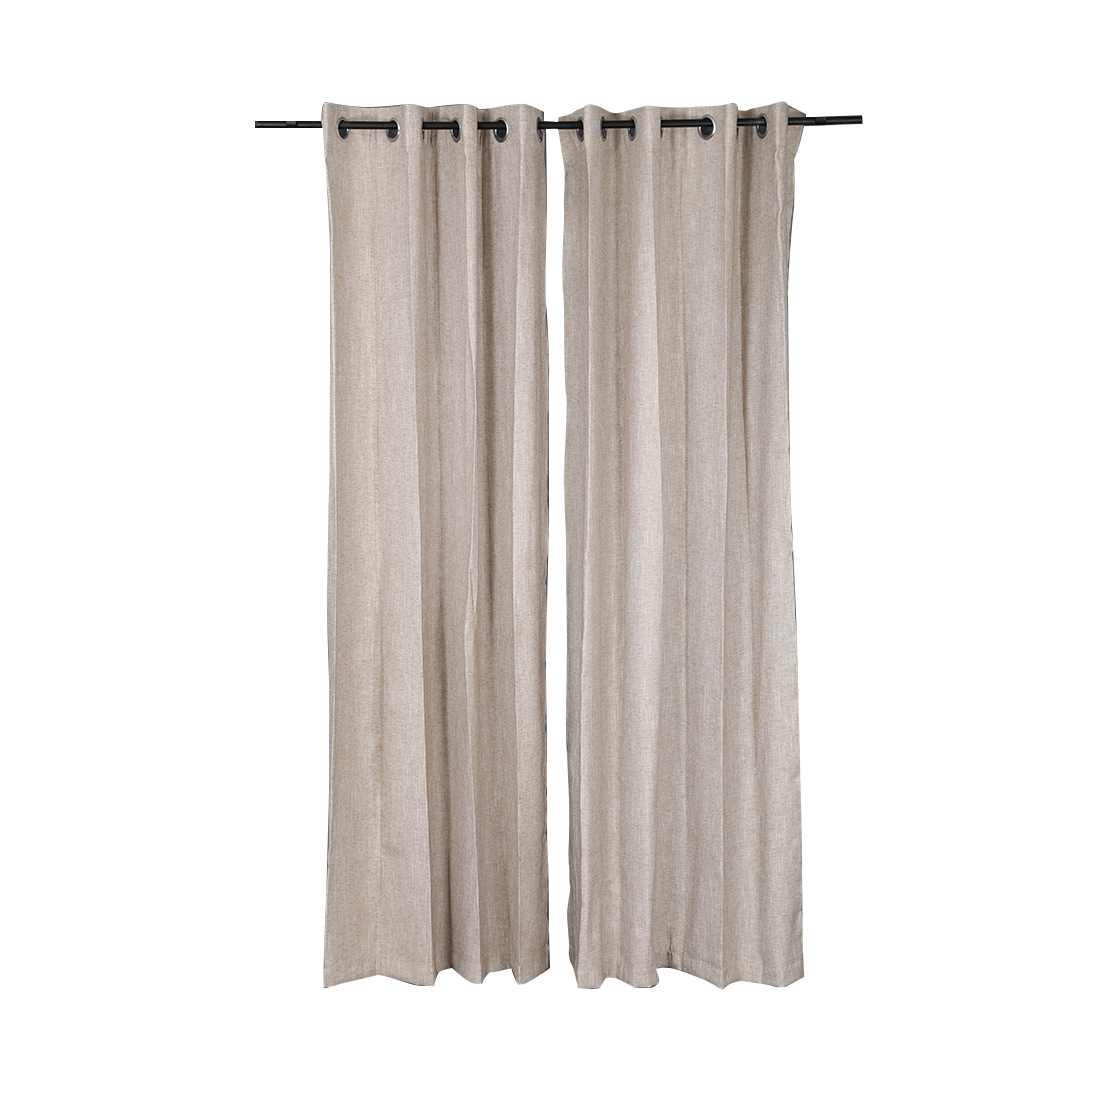 Amour Cotton Polyester Door Curtains in Beige Colour by Living Essence